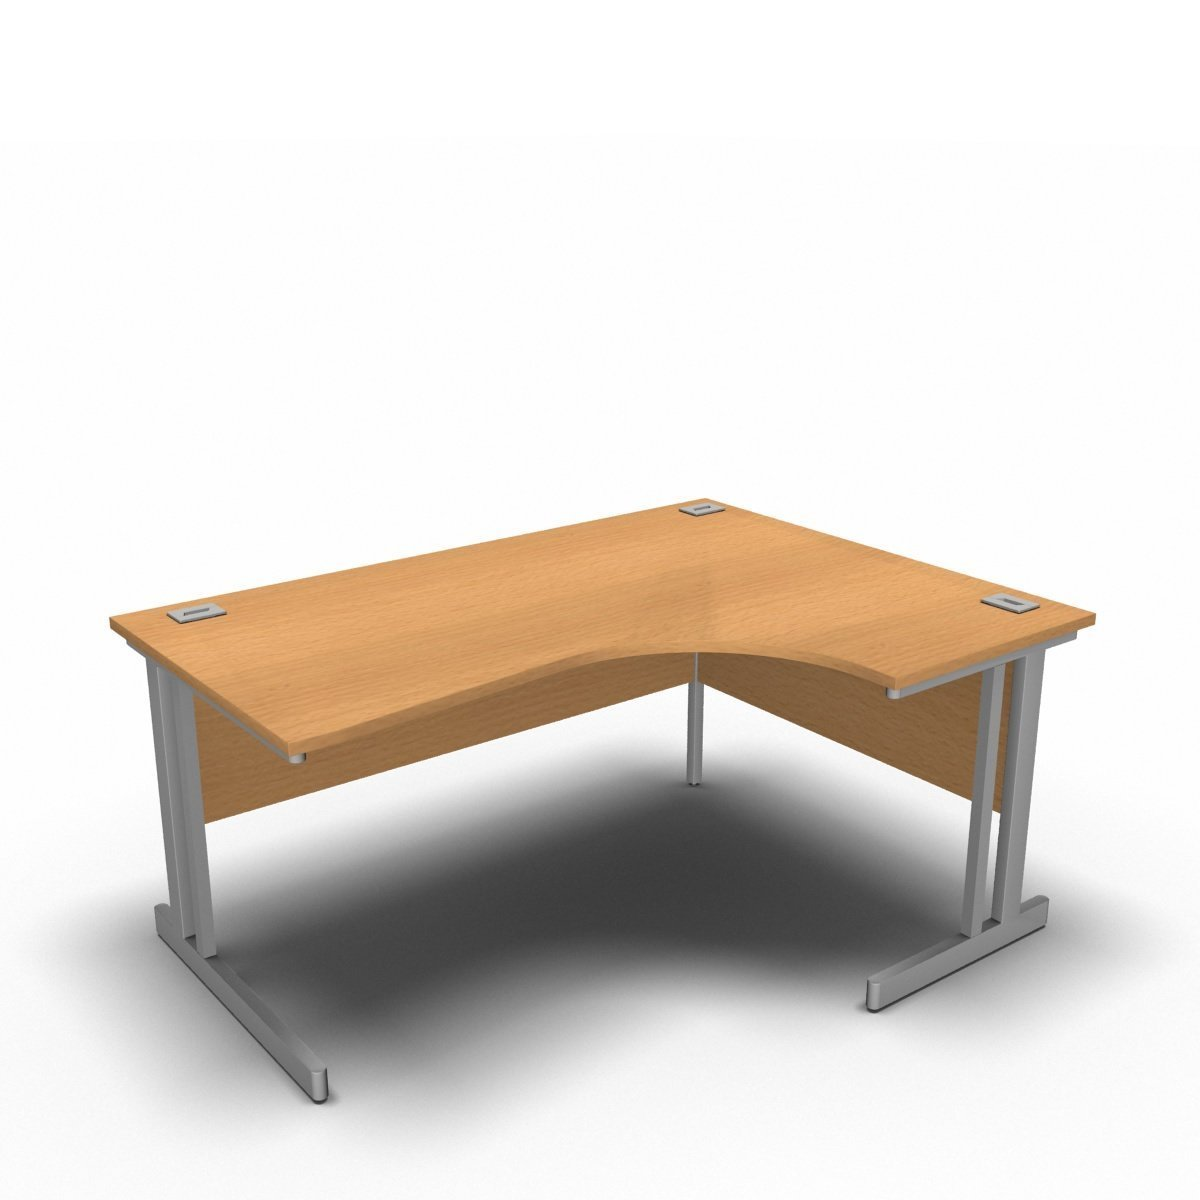 Desk 1600 x 1200 x 800 x 600mm / Right / Beech Synergy Crescent Desks